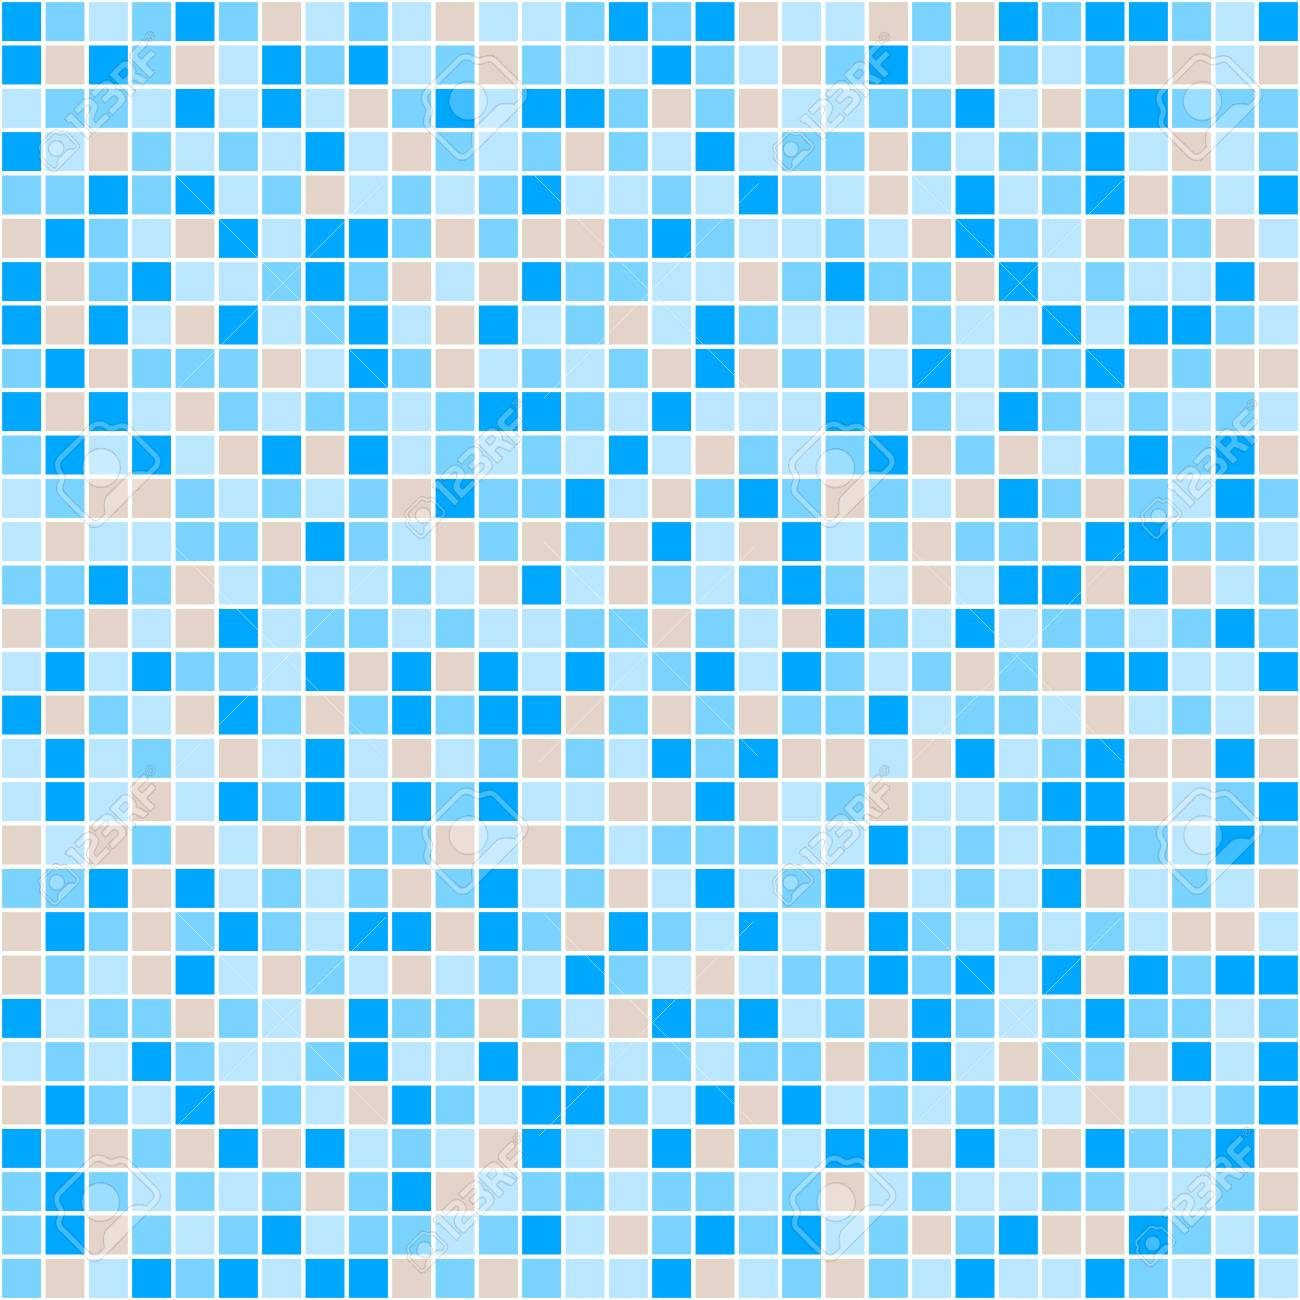 Blue And Beige Ceramic Tile Mosaic In Swimming Pool. Vector Seamless ...